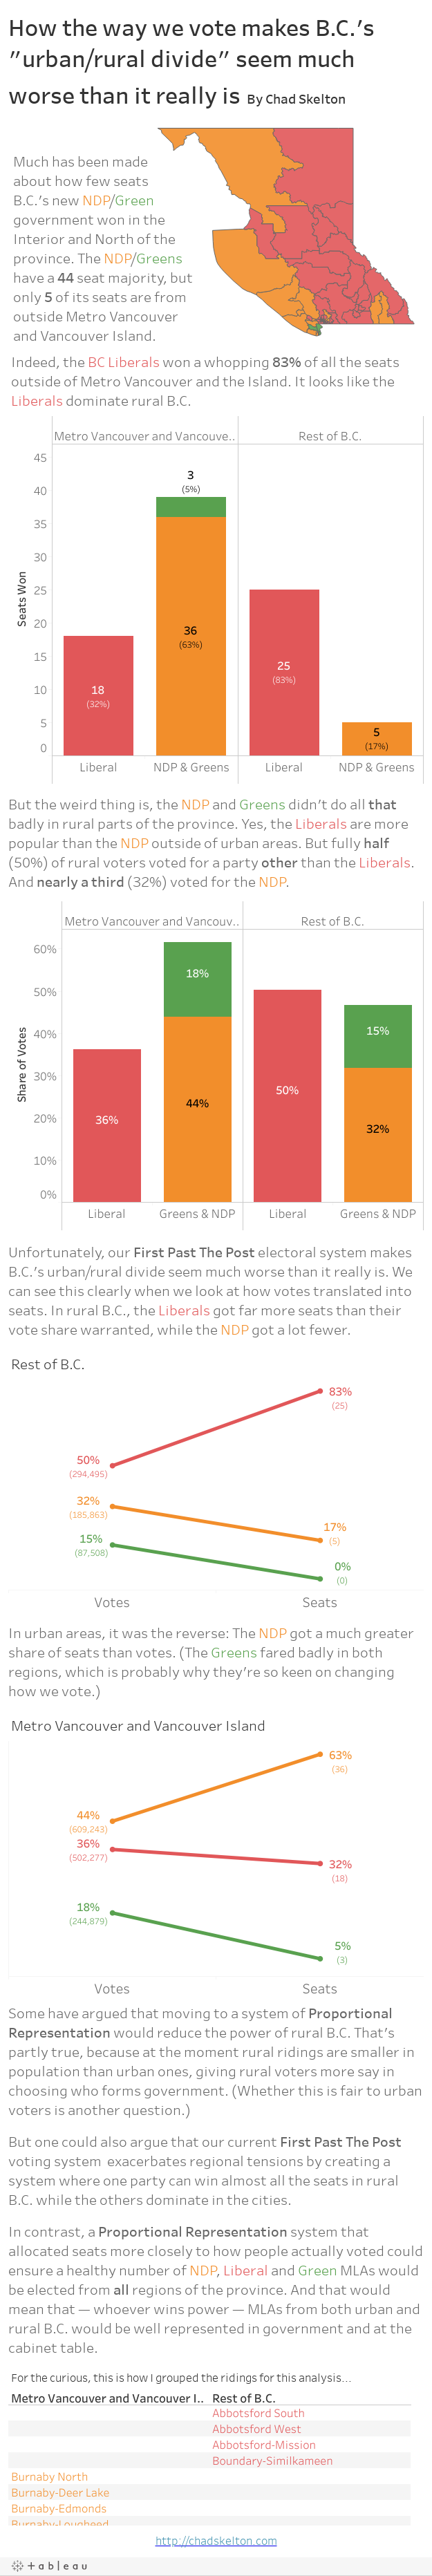 "How the way we vote makes B.C.'s ""urban/rural divide"" seem much worse than it really is By Chad Skelton"